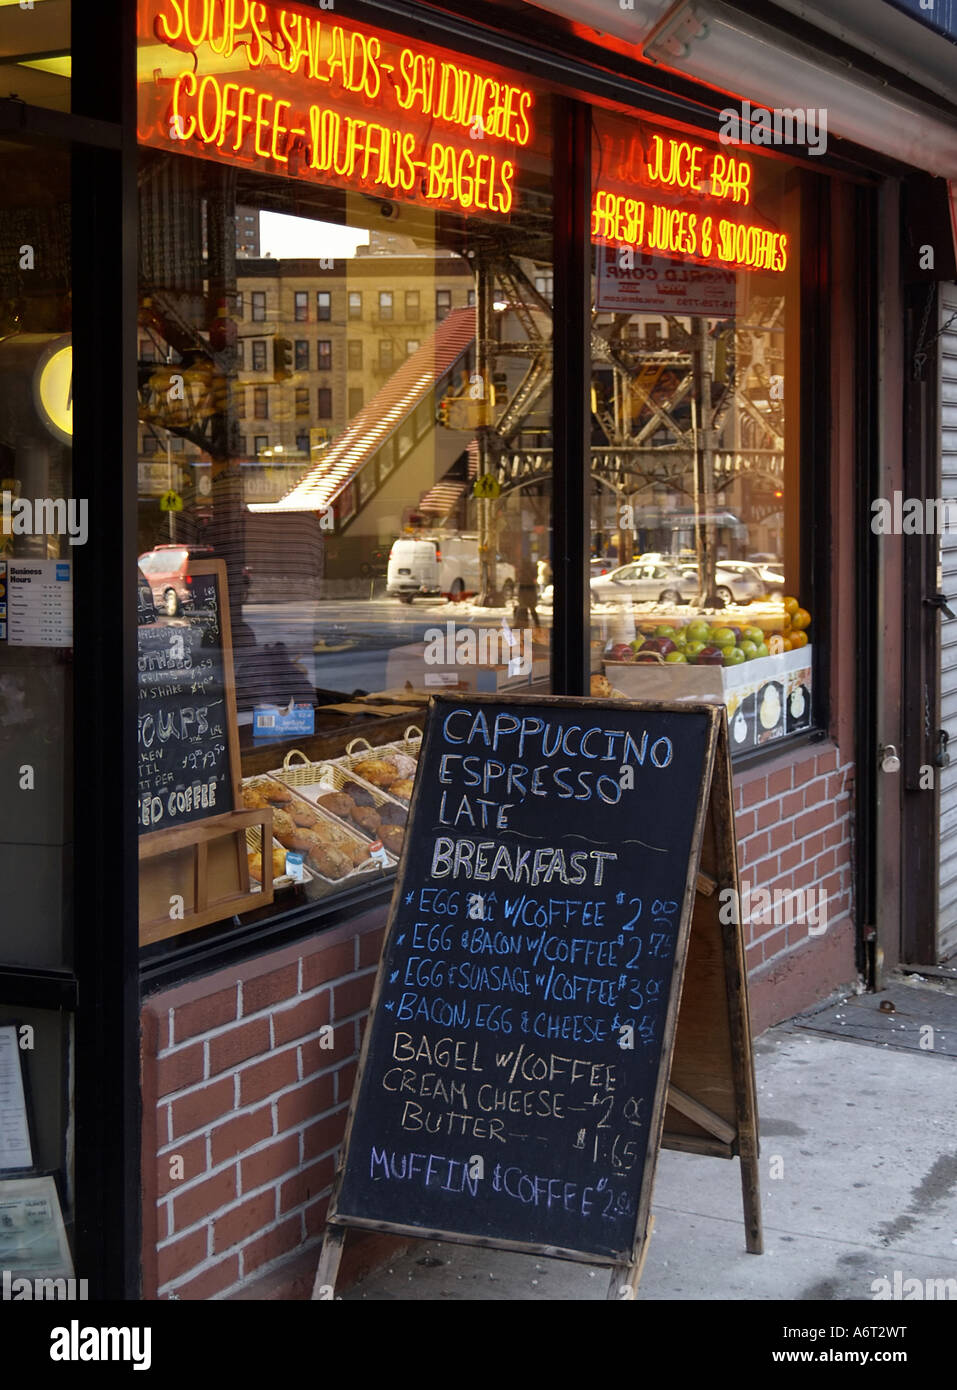 black chalk board sales sign outside a coffee shop or deli on the upper west side of manhattan in the morning with neon sign